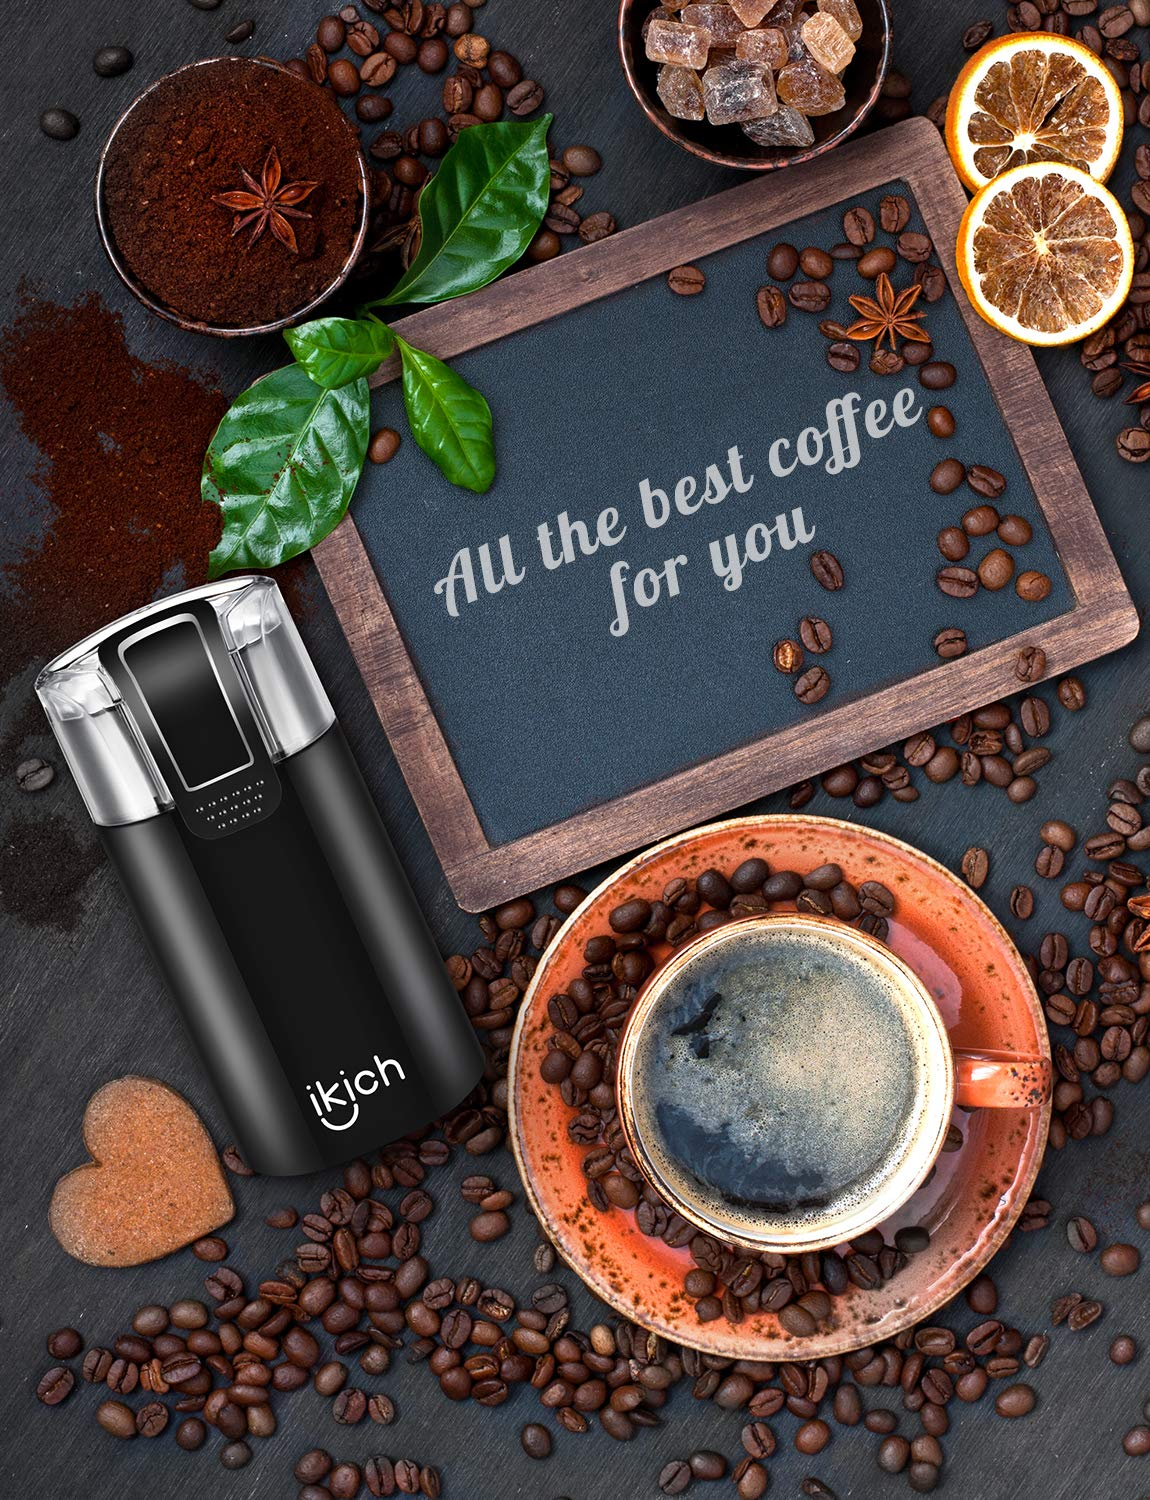 Coffee Grinder Electric, IKICH 120V Powerful Blade Coffee Bean&Spice Grinder with 12 Cups Large Grinding Capacity, Cord Storage, Portable, Also for Spices, Pepper, Nuts, Seeds, Grains by IKICH